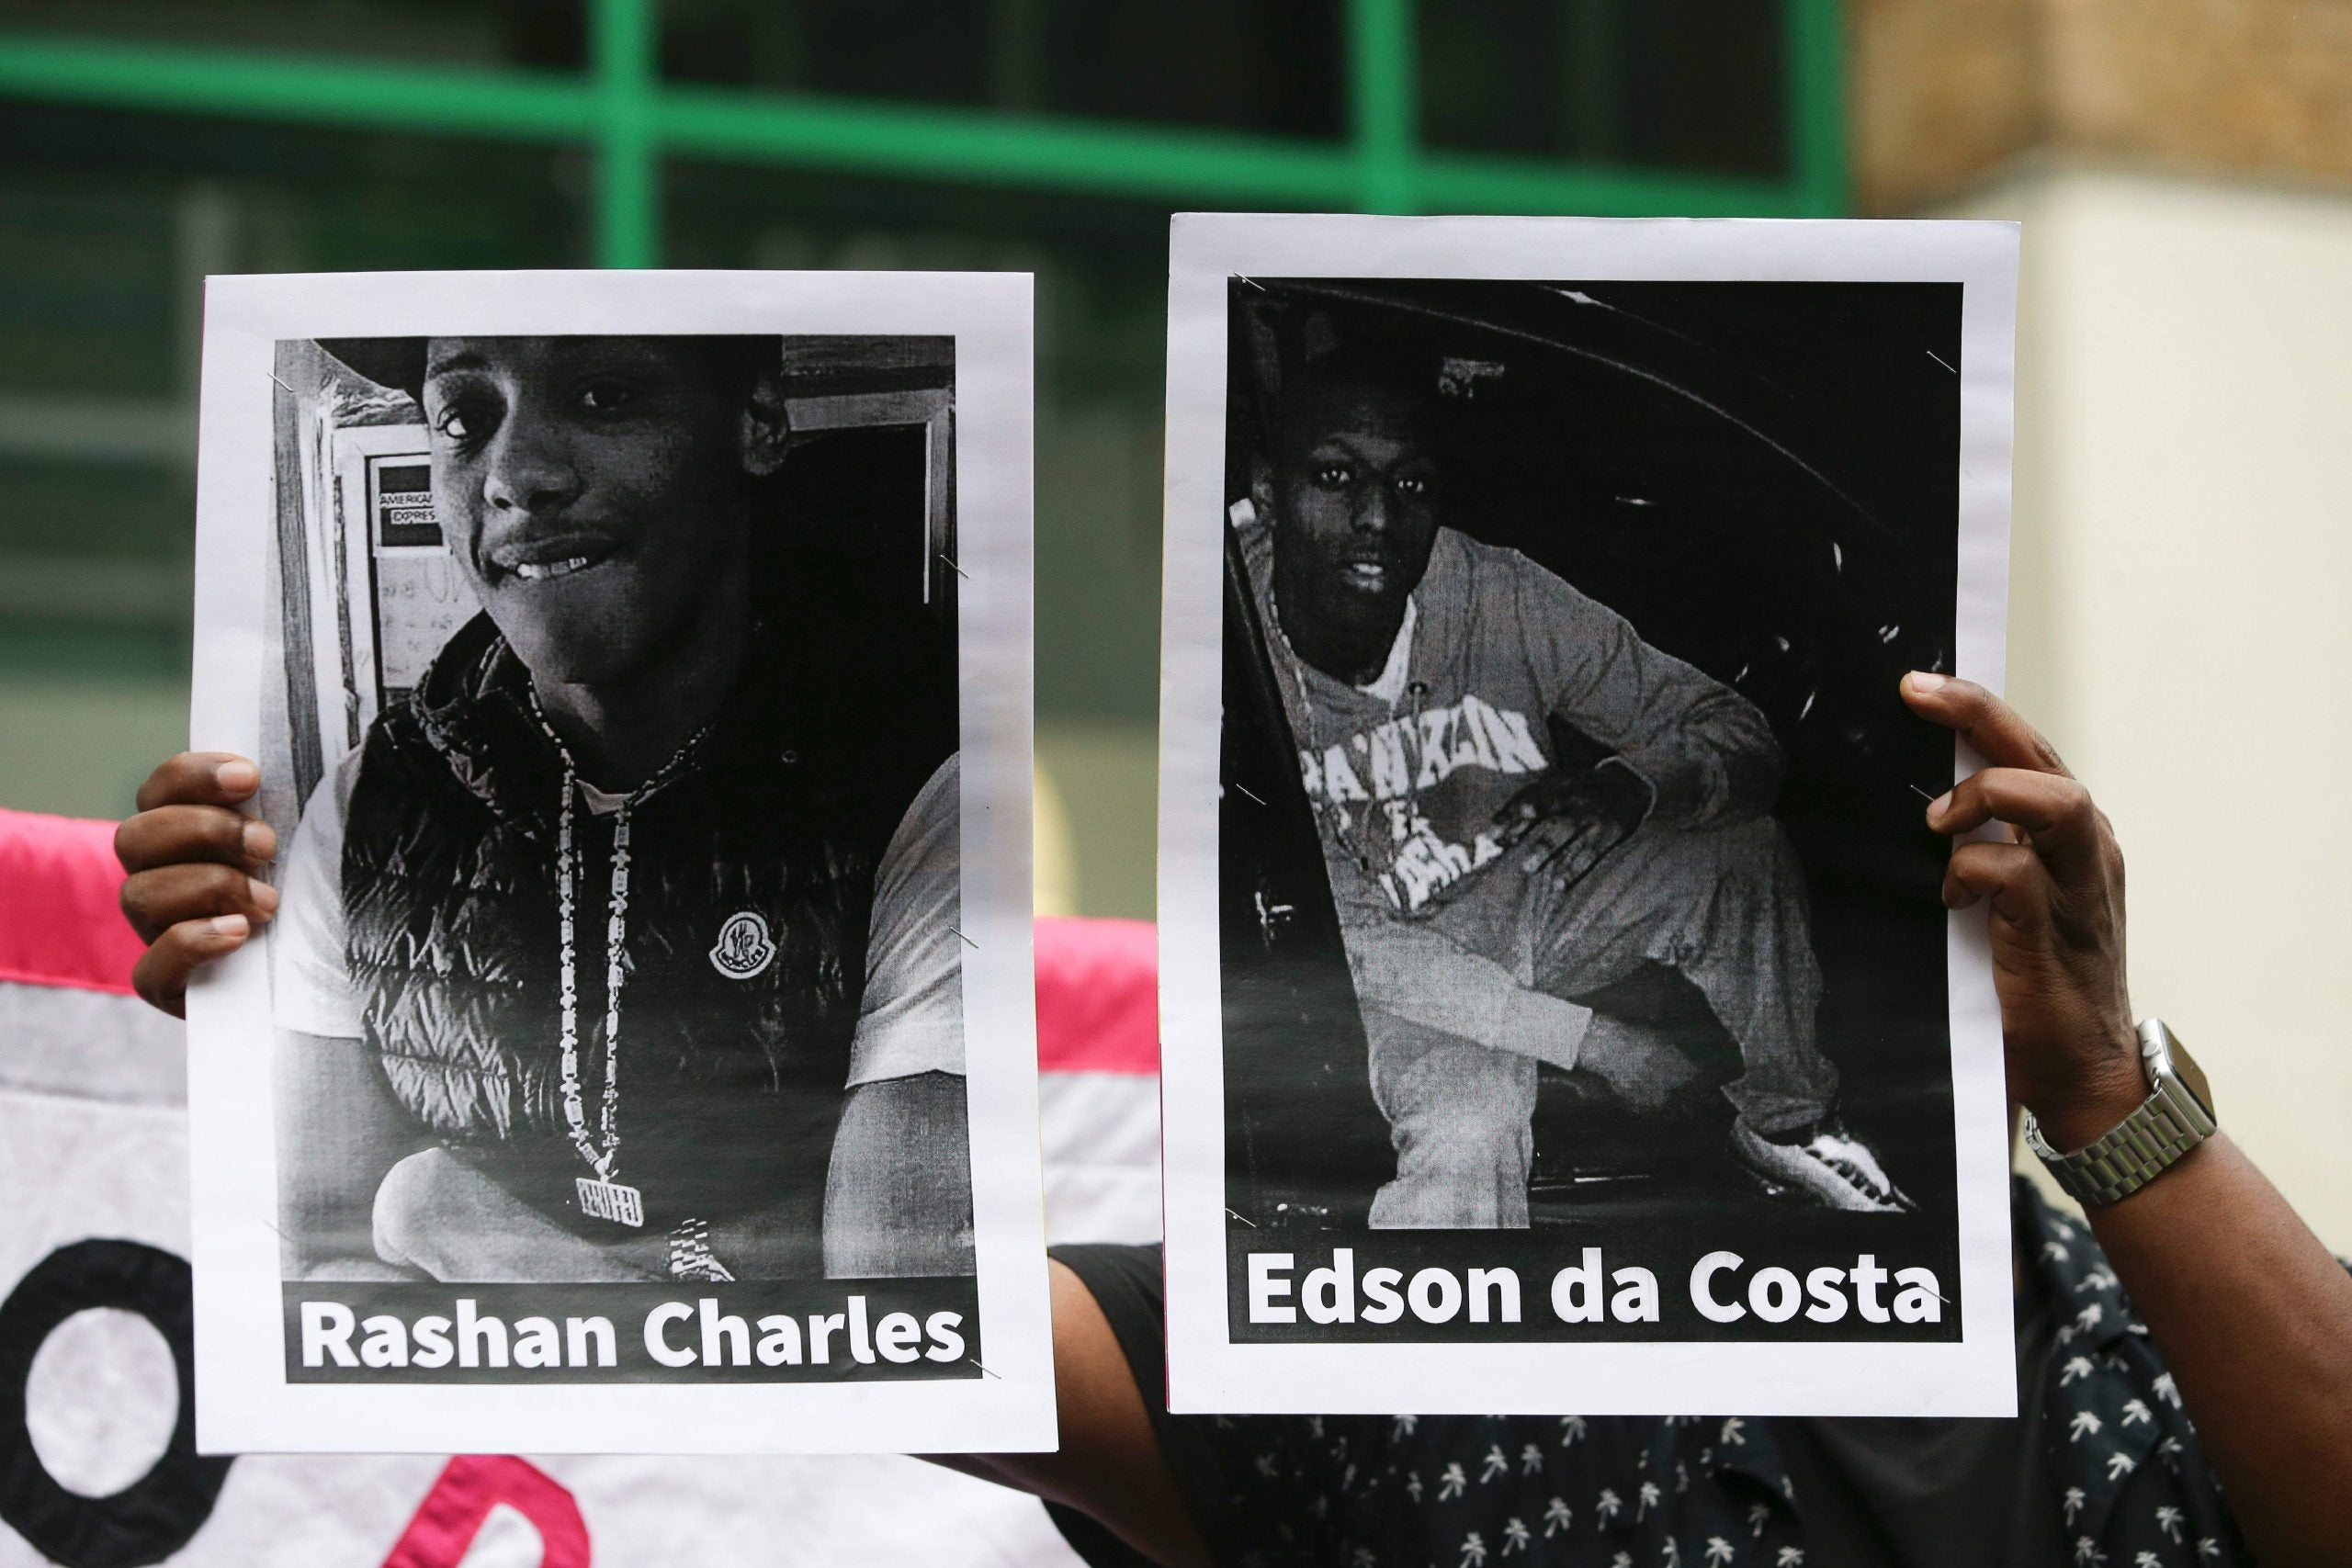 Unrest in Dalston: the death of Rashan Charles took place in a divided community